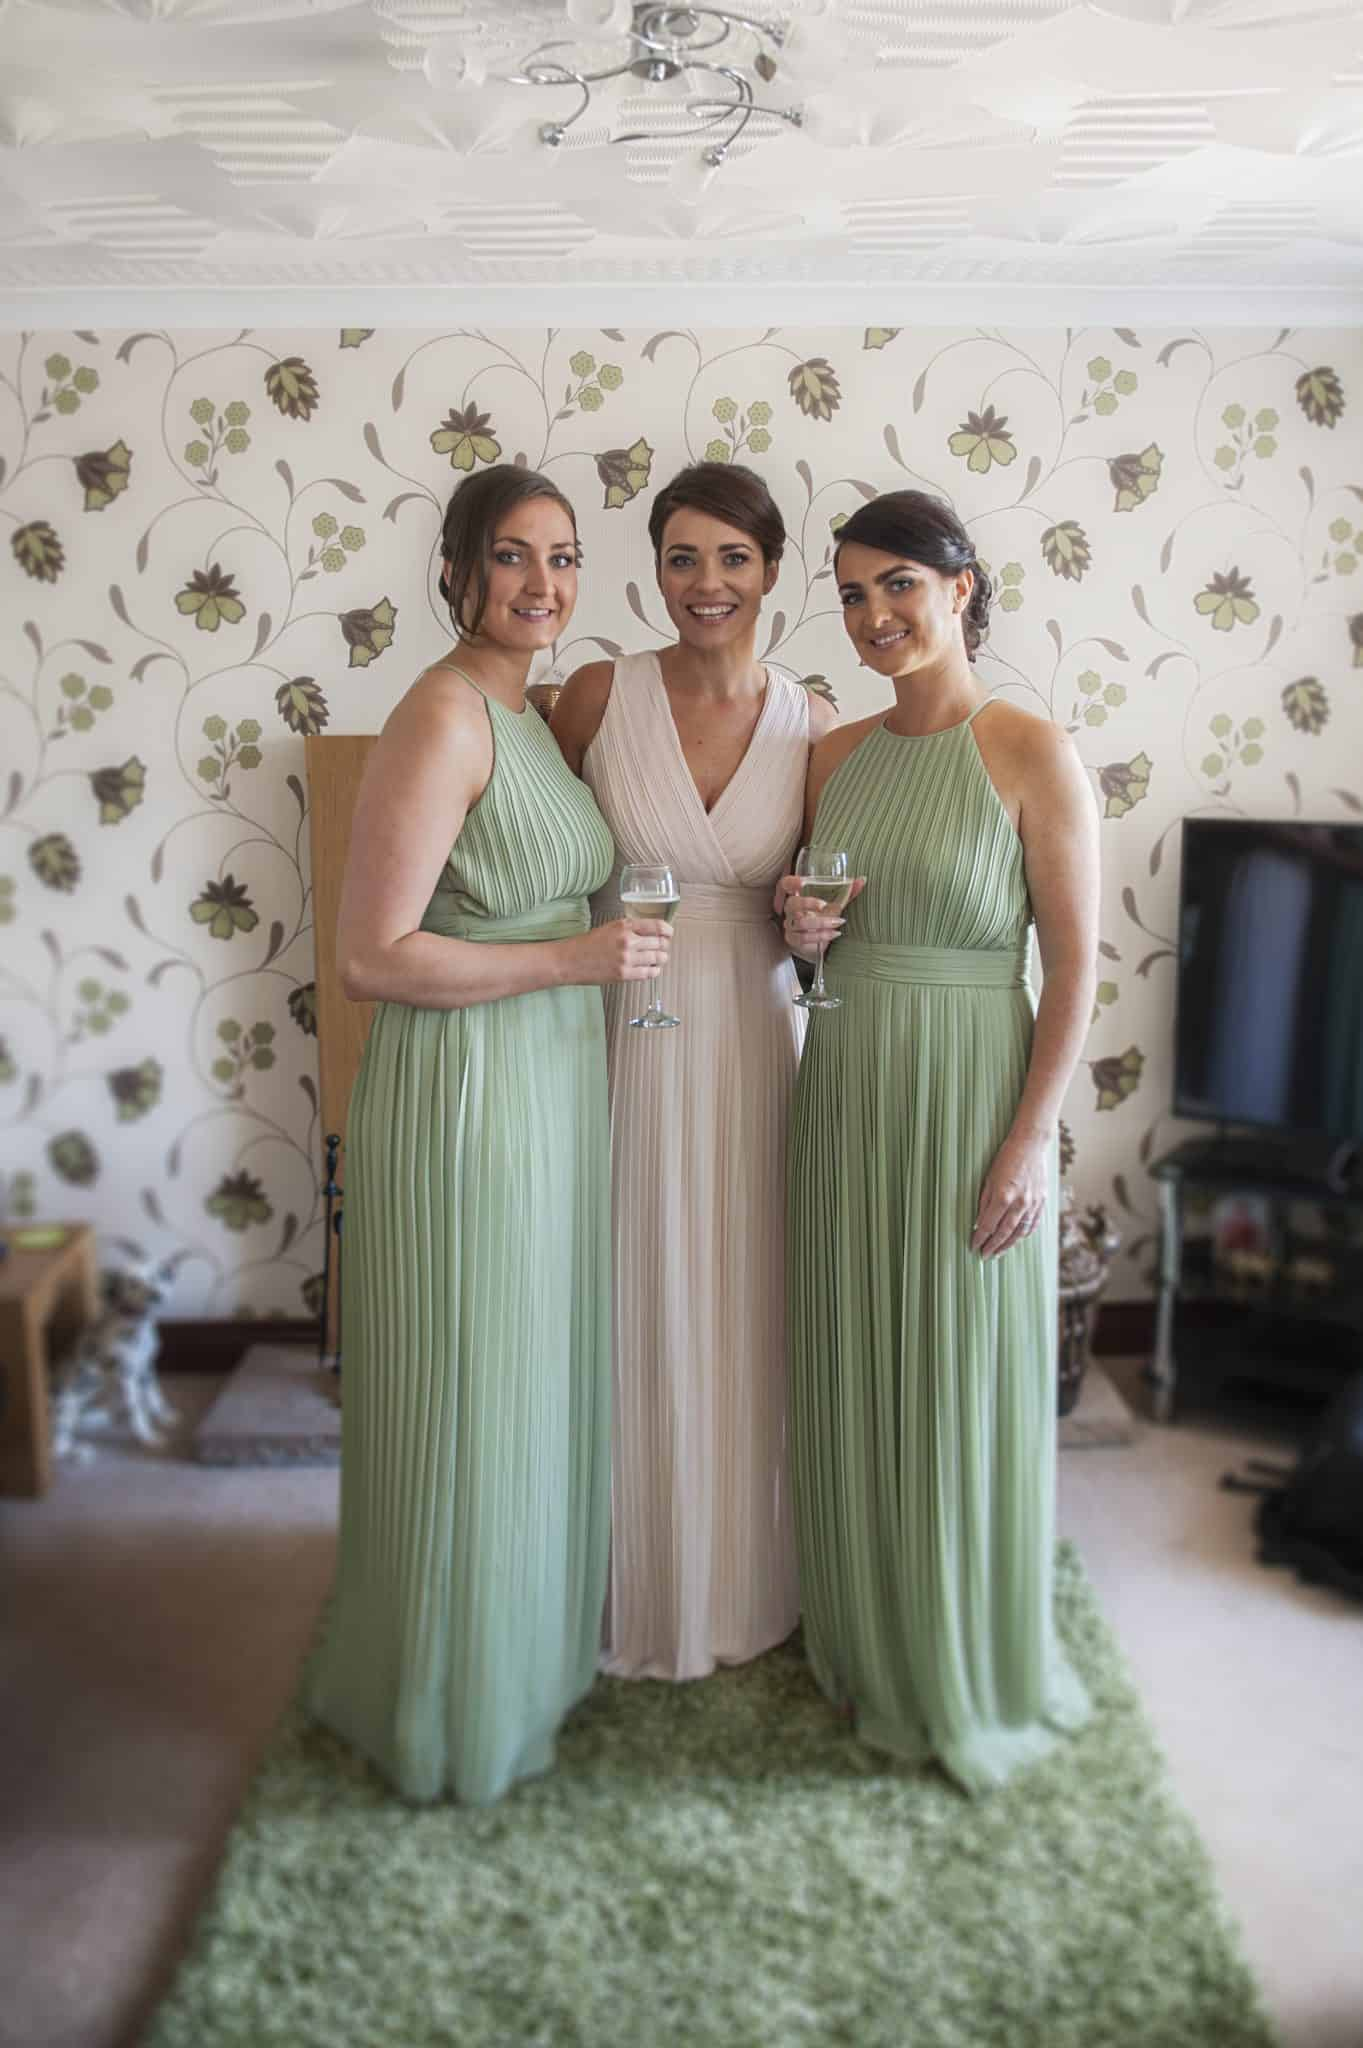 Bridesmaids stood in living room